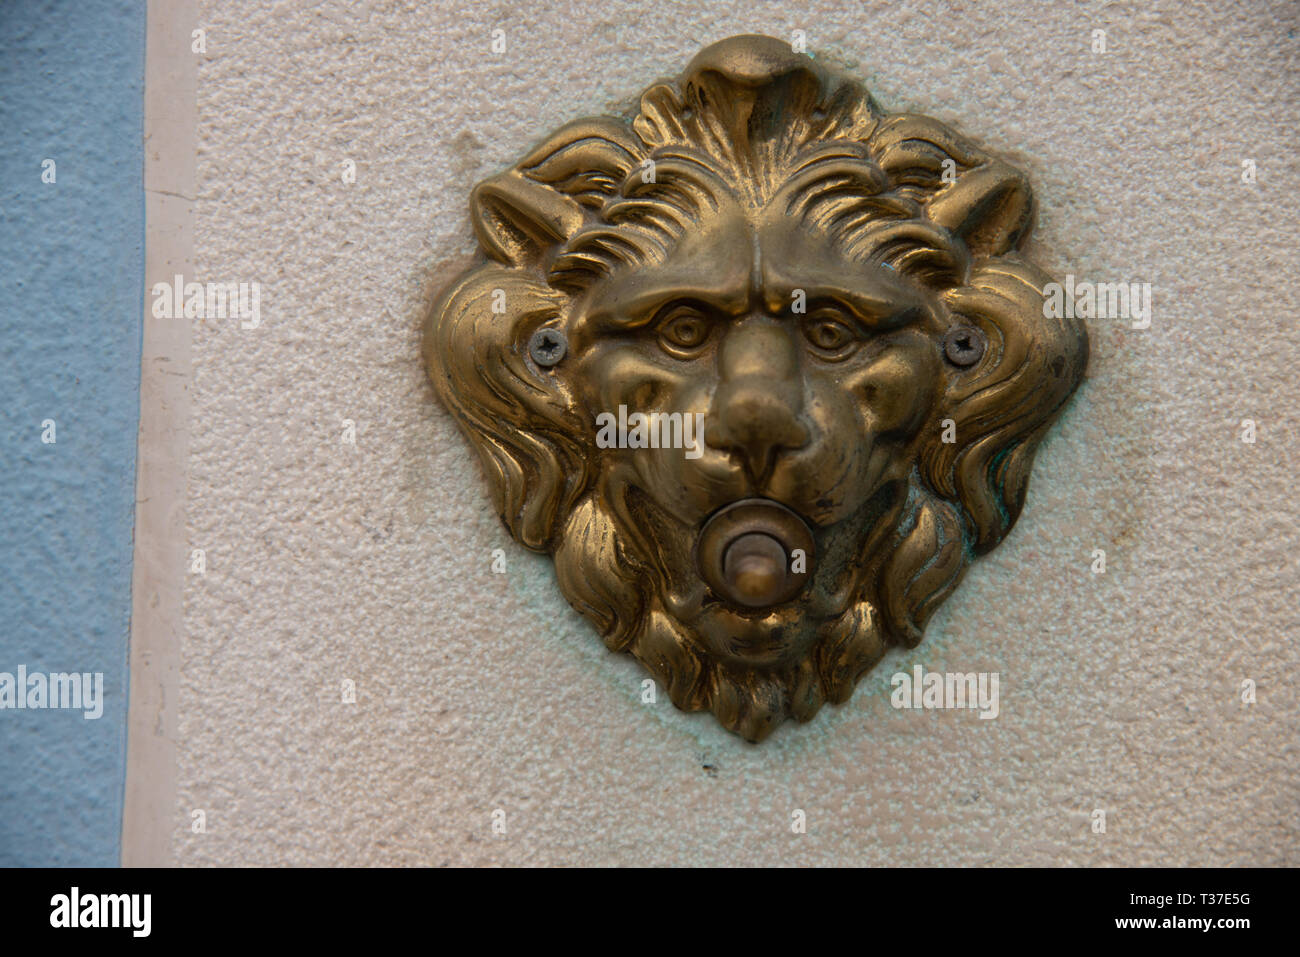 Door bell with a lion's head, antiqued burnished brass button. Electrified doorbell button of a house in Burano, Venice. - Stock Image